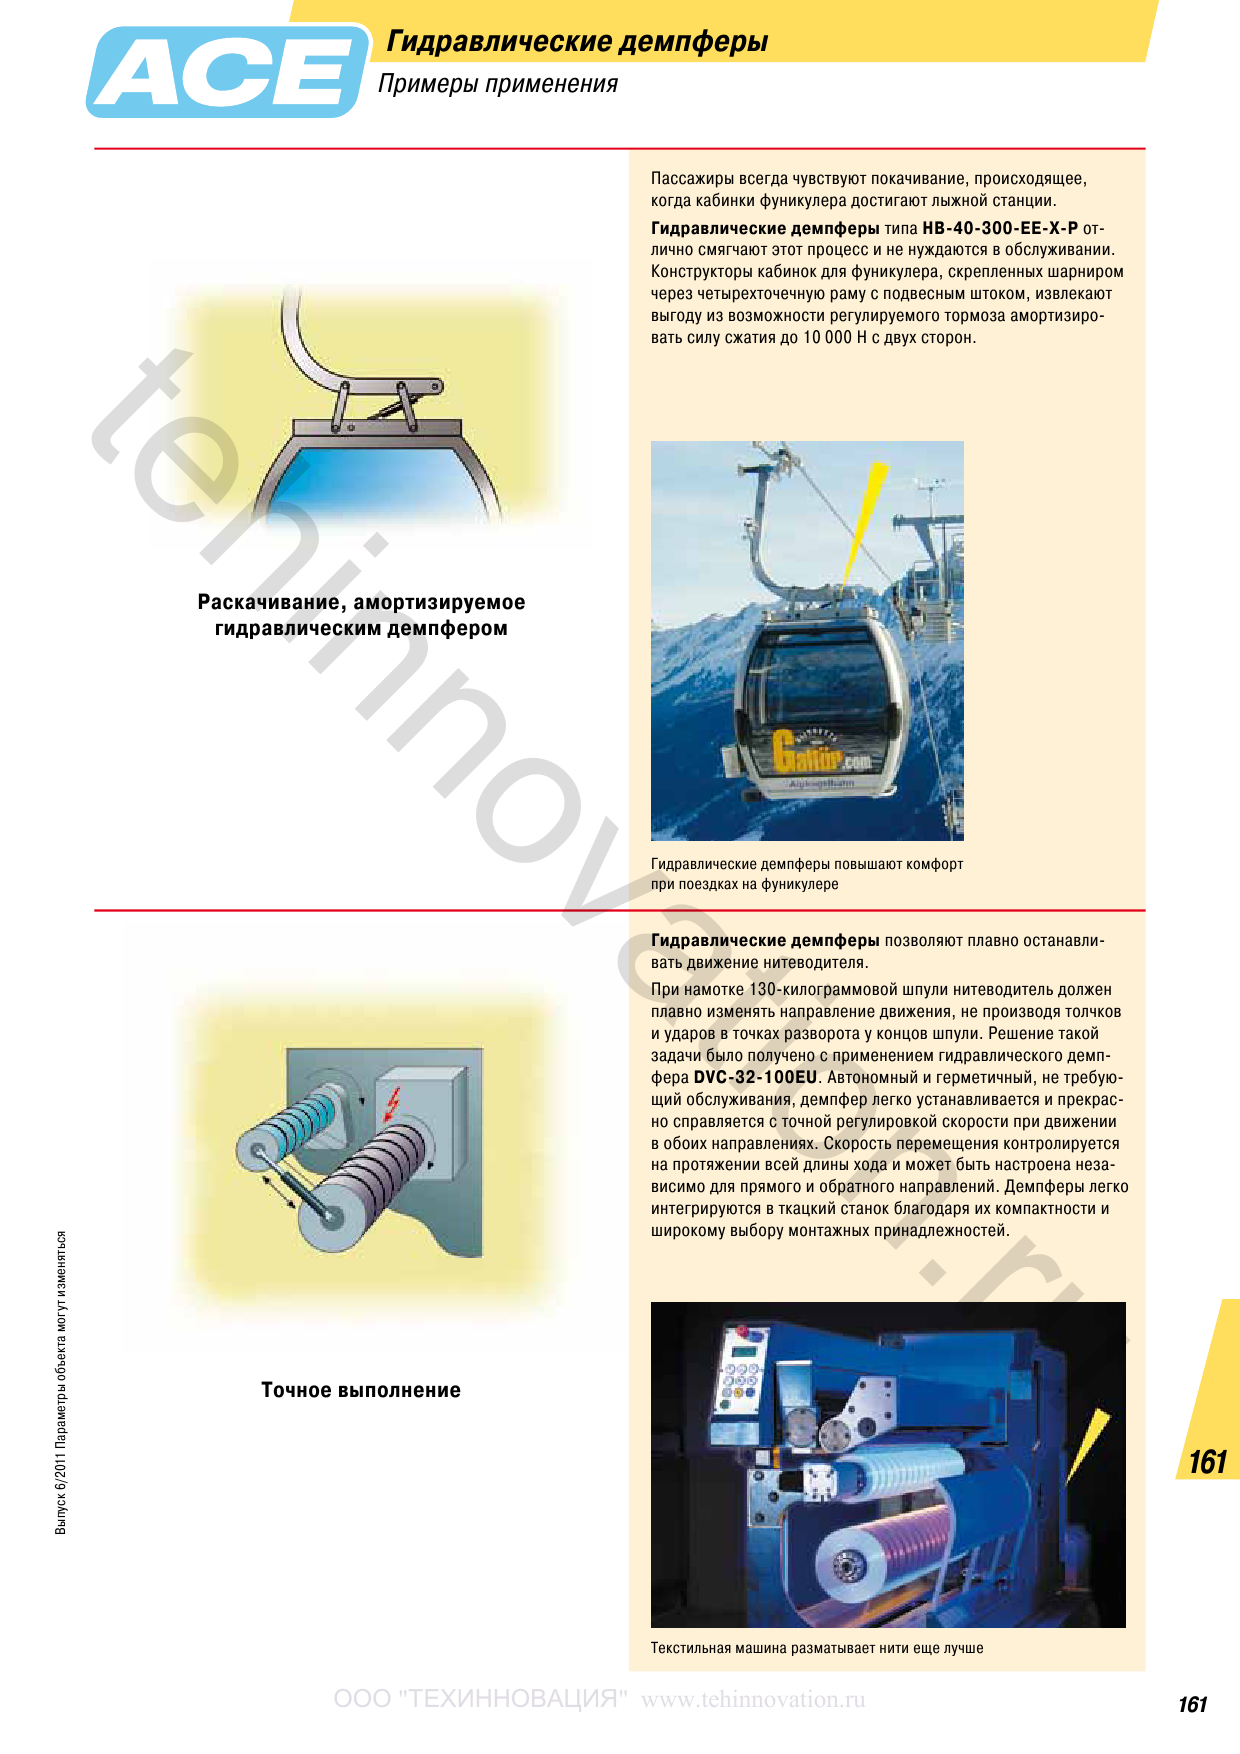 ACE-c1t-www.tehinnovation.ru_14.png